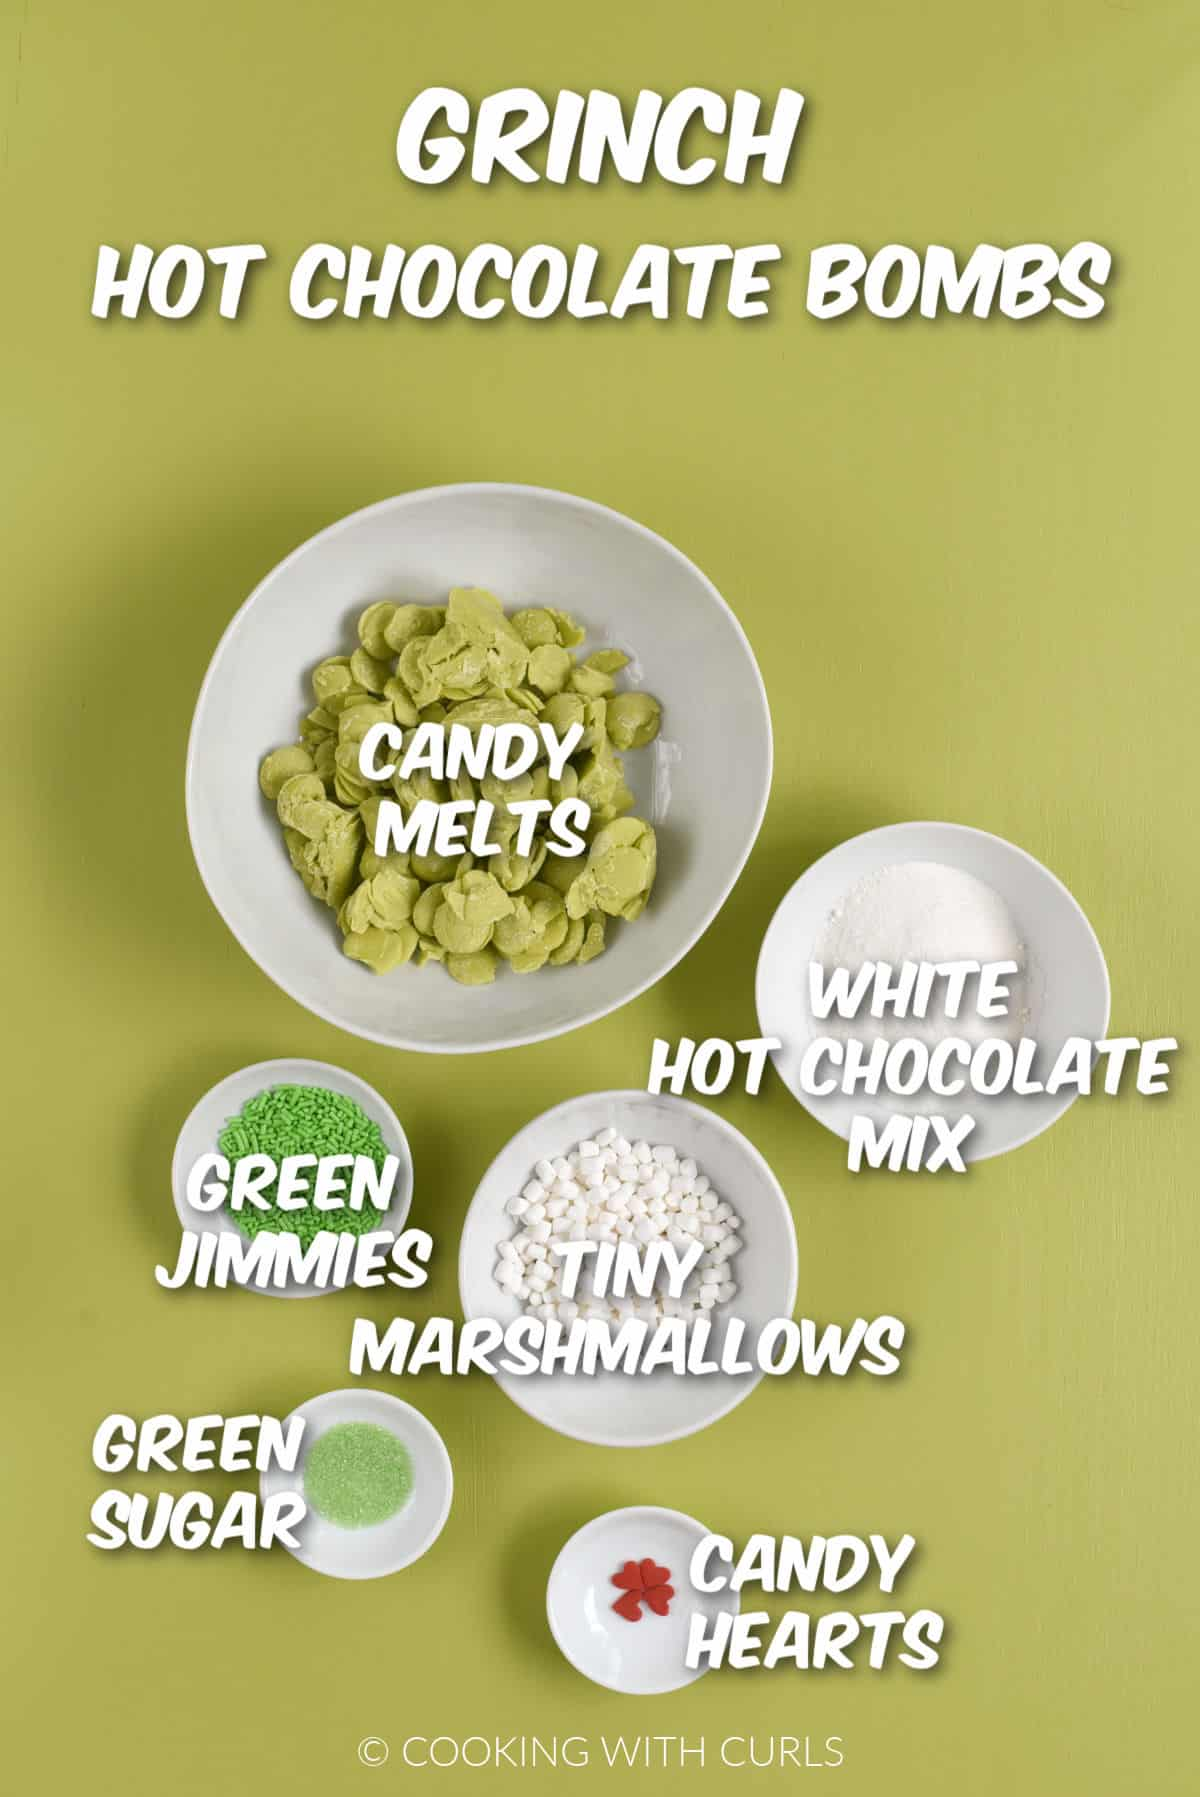 Green candy melts. white hot cocoa mix, tiny marshmallows, red hearts and green sugar in white bowls.